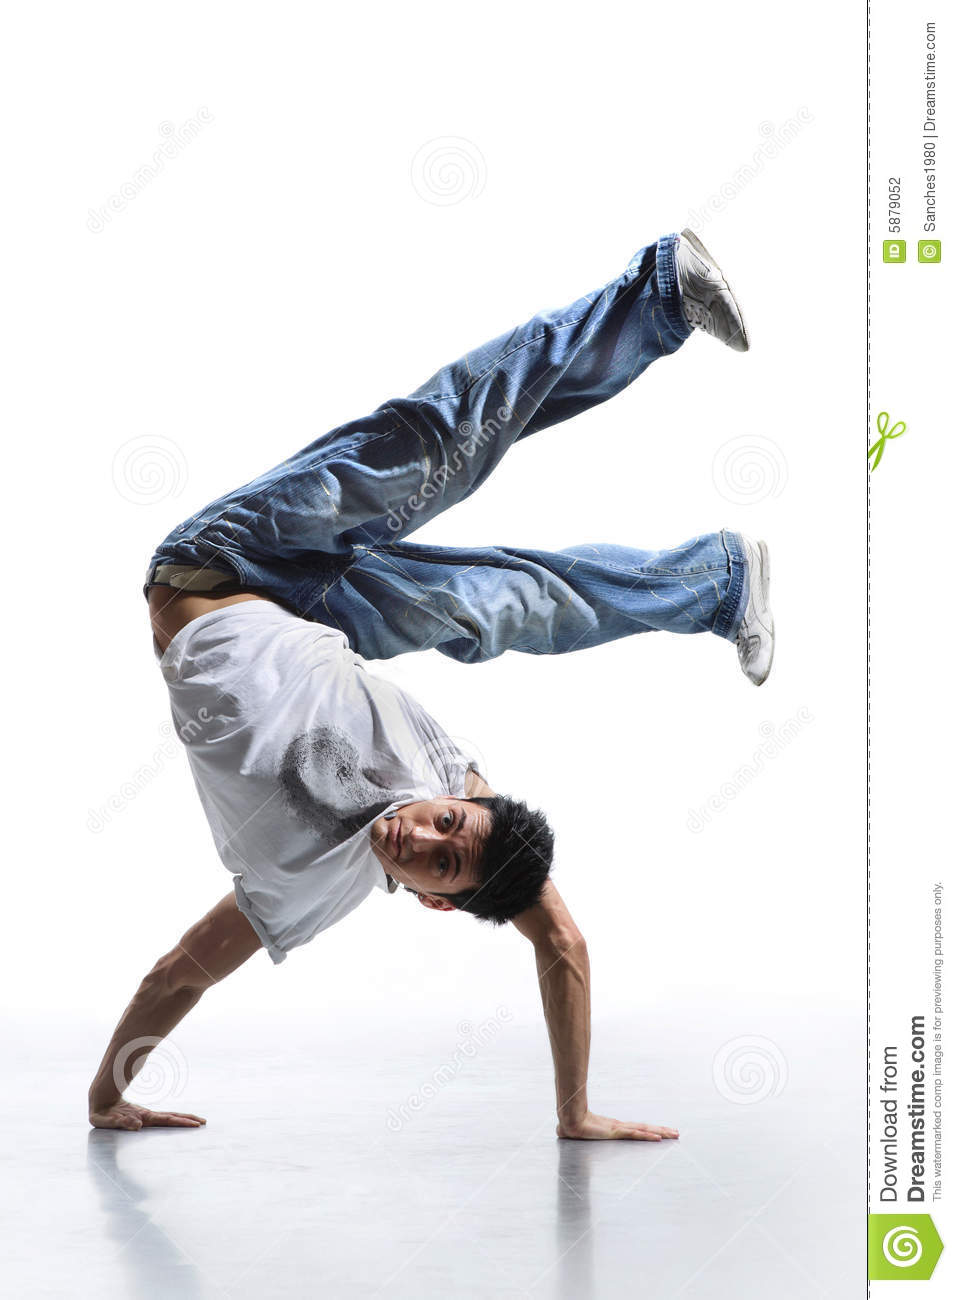 Breakdance style dancer doing freeze position.